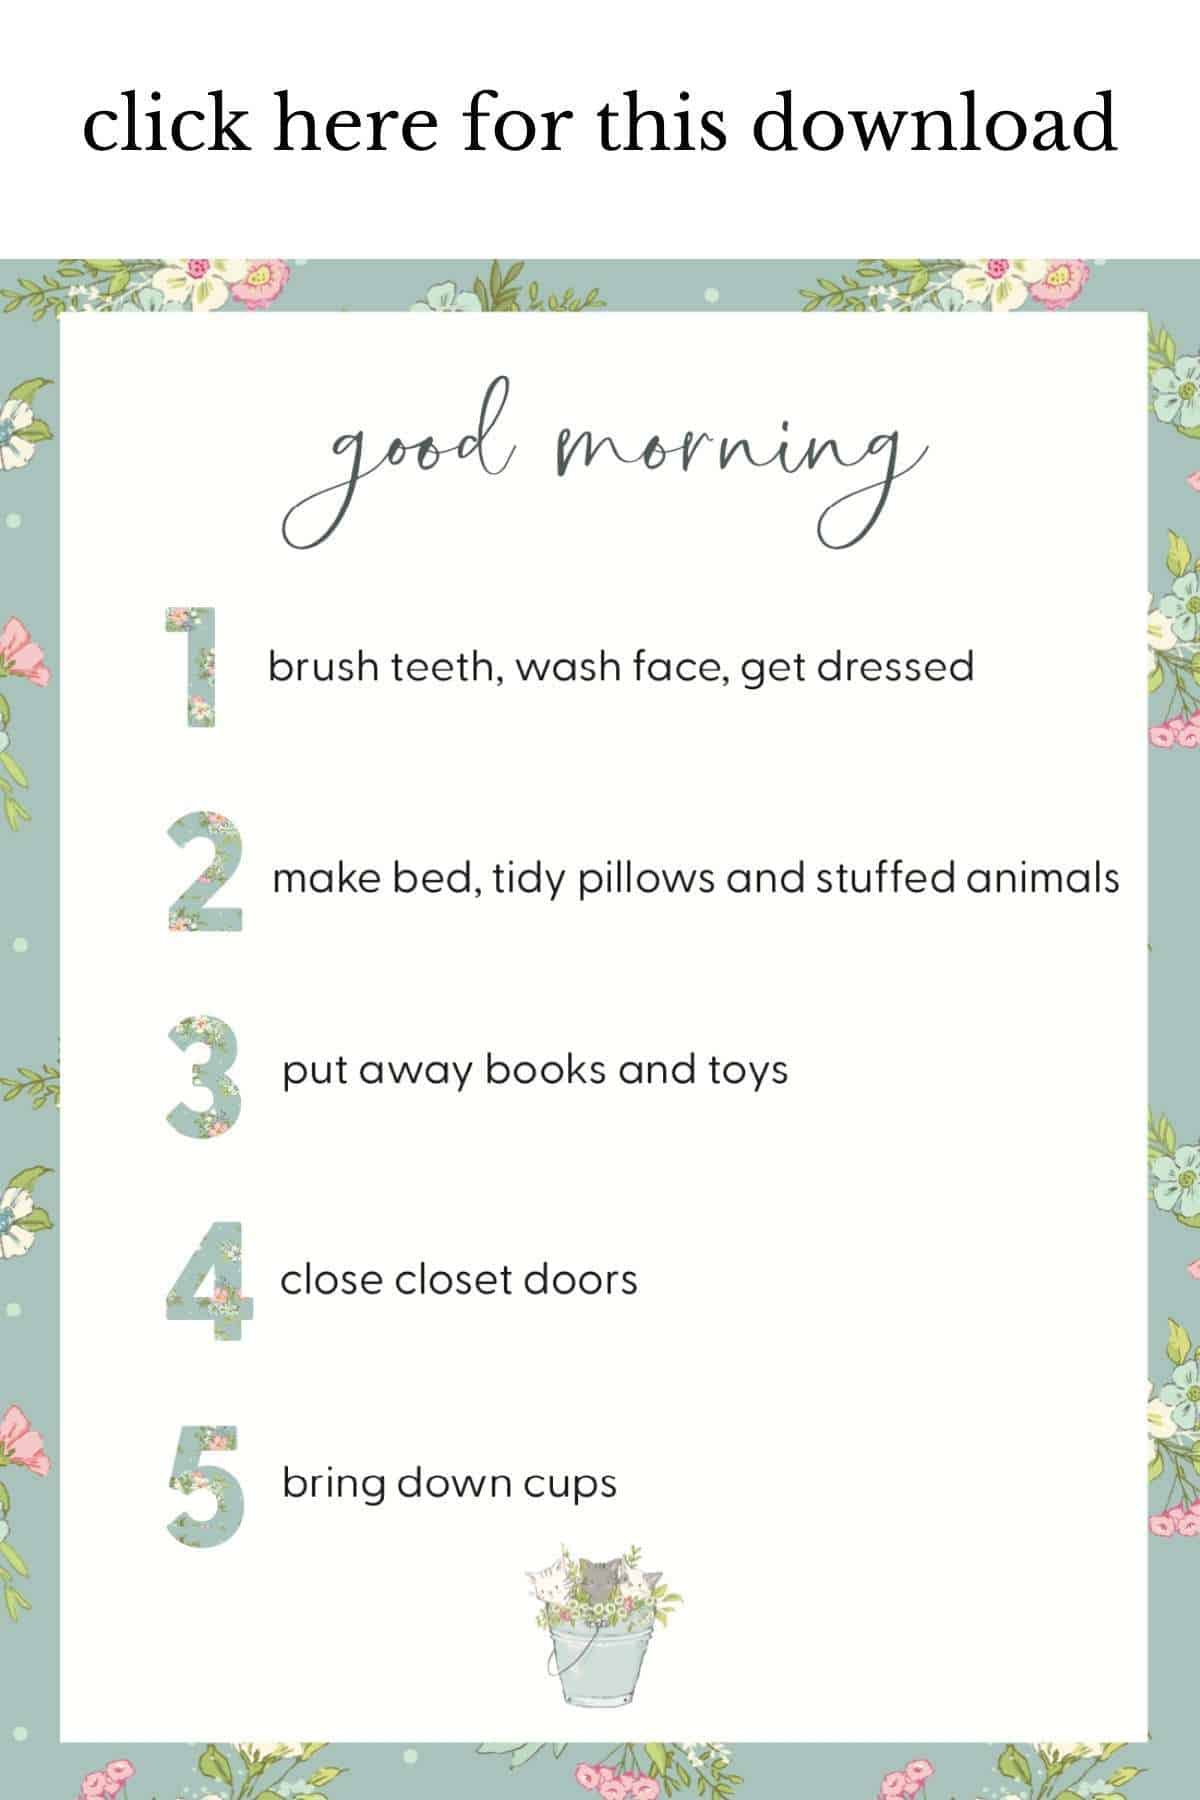 kids morning printable listed 1-5 with kittens, listing morning chores